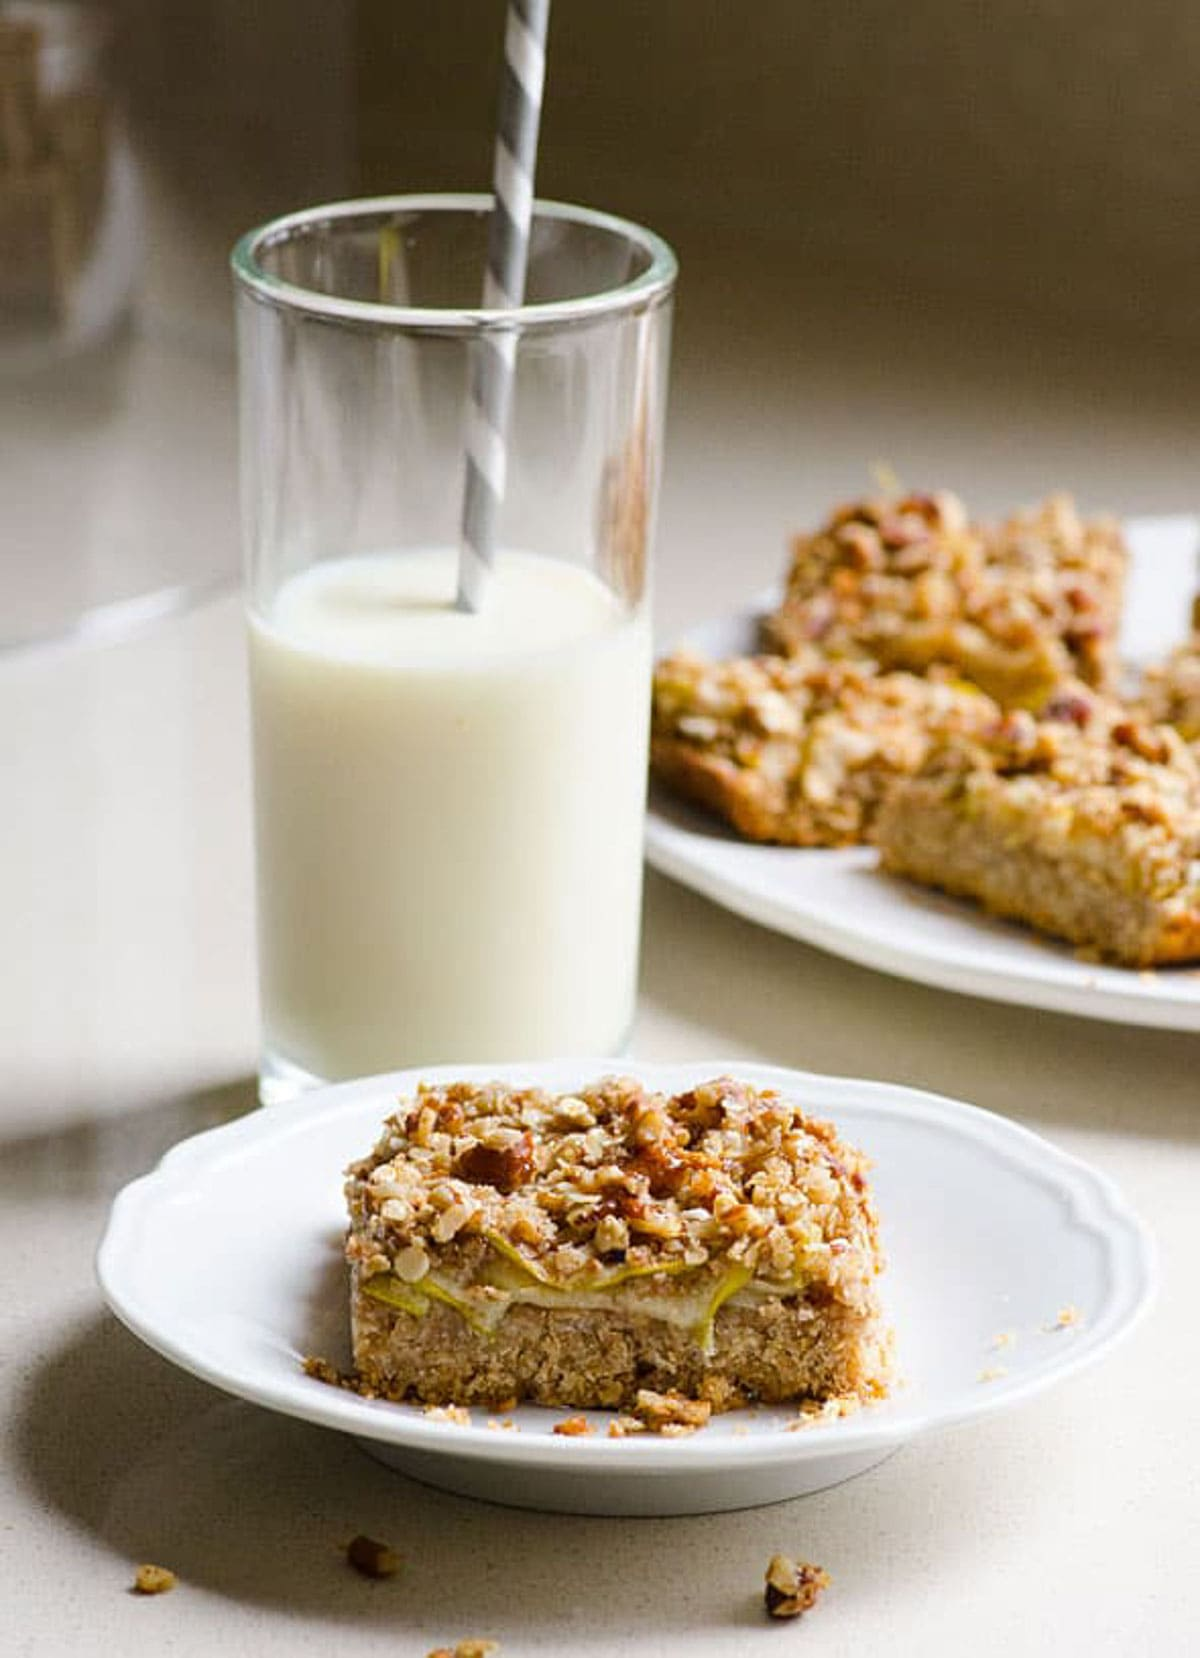 Apple Oatmeal Bars Recipe with honey, oats, whole wheat flour, applesauce, apples, and cinnamon for healthy soft bars with a pecan topping. | ifoodreal.com